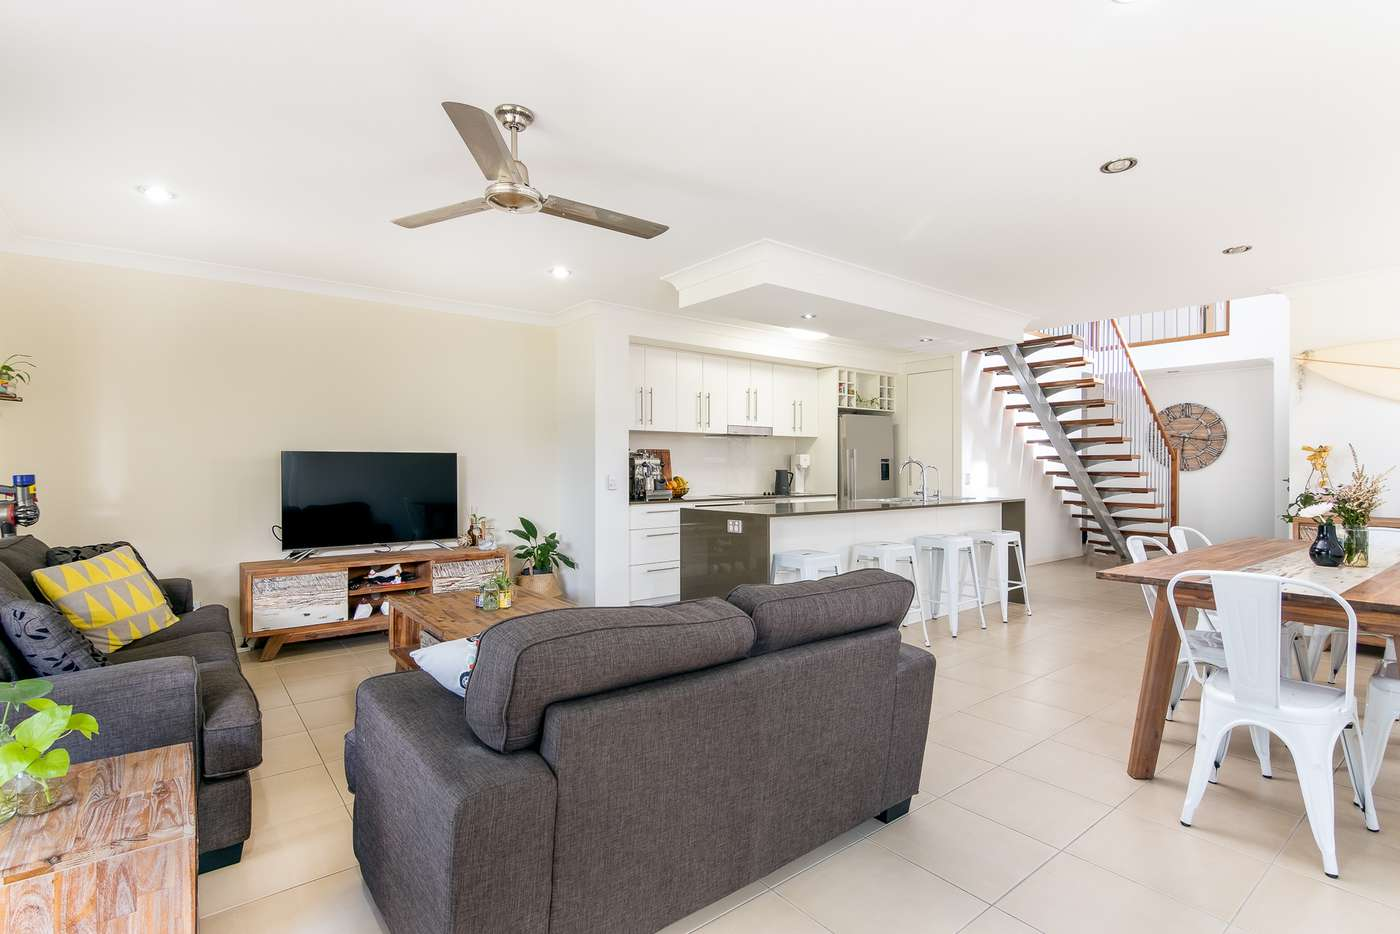 Fifth view of Homely house listing, 88 Verona Circuit, Burleigh Waters QLD 4220